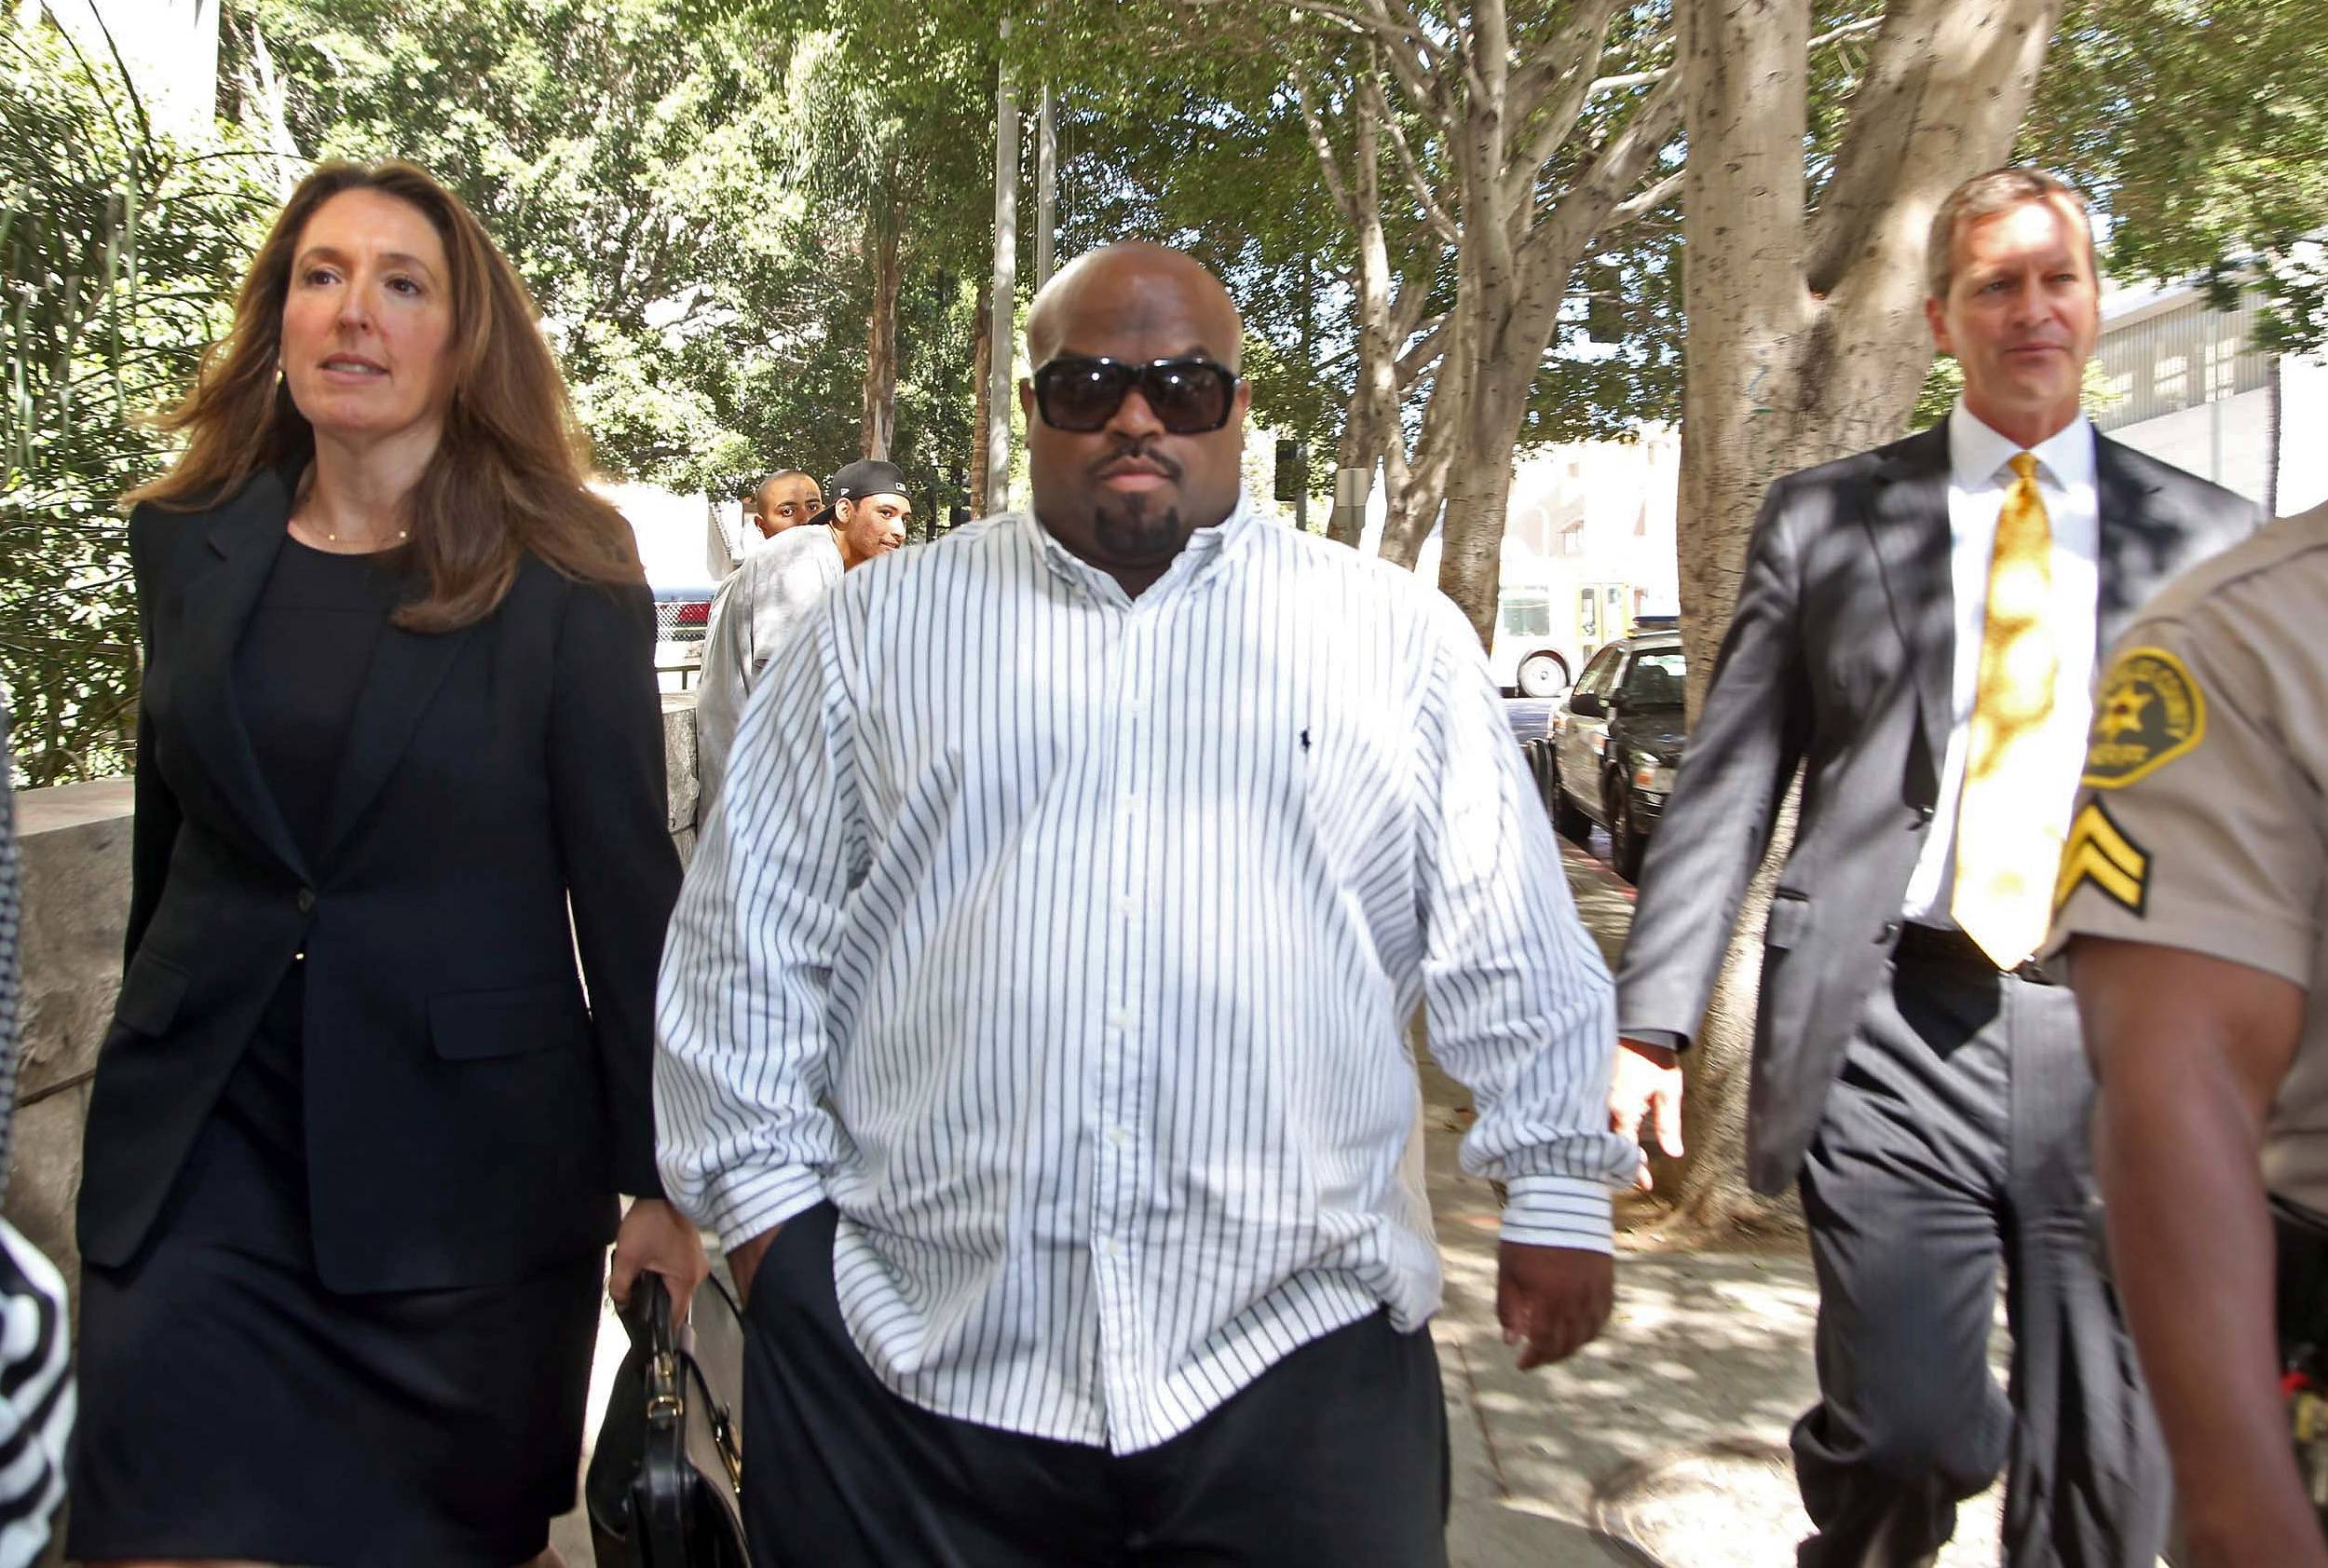 Cee Lo Green leaves Los Angeles Superior Court after a hearing Friday. Green pleaded no contest to giving a woman ecstasy during a 2012 dinner in Los Angeles. He was sentenced to three years of probation and 360 hours of community service.